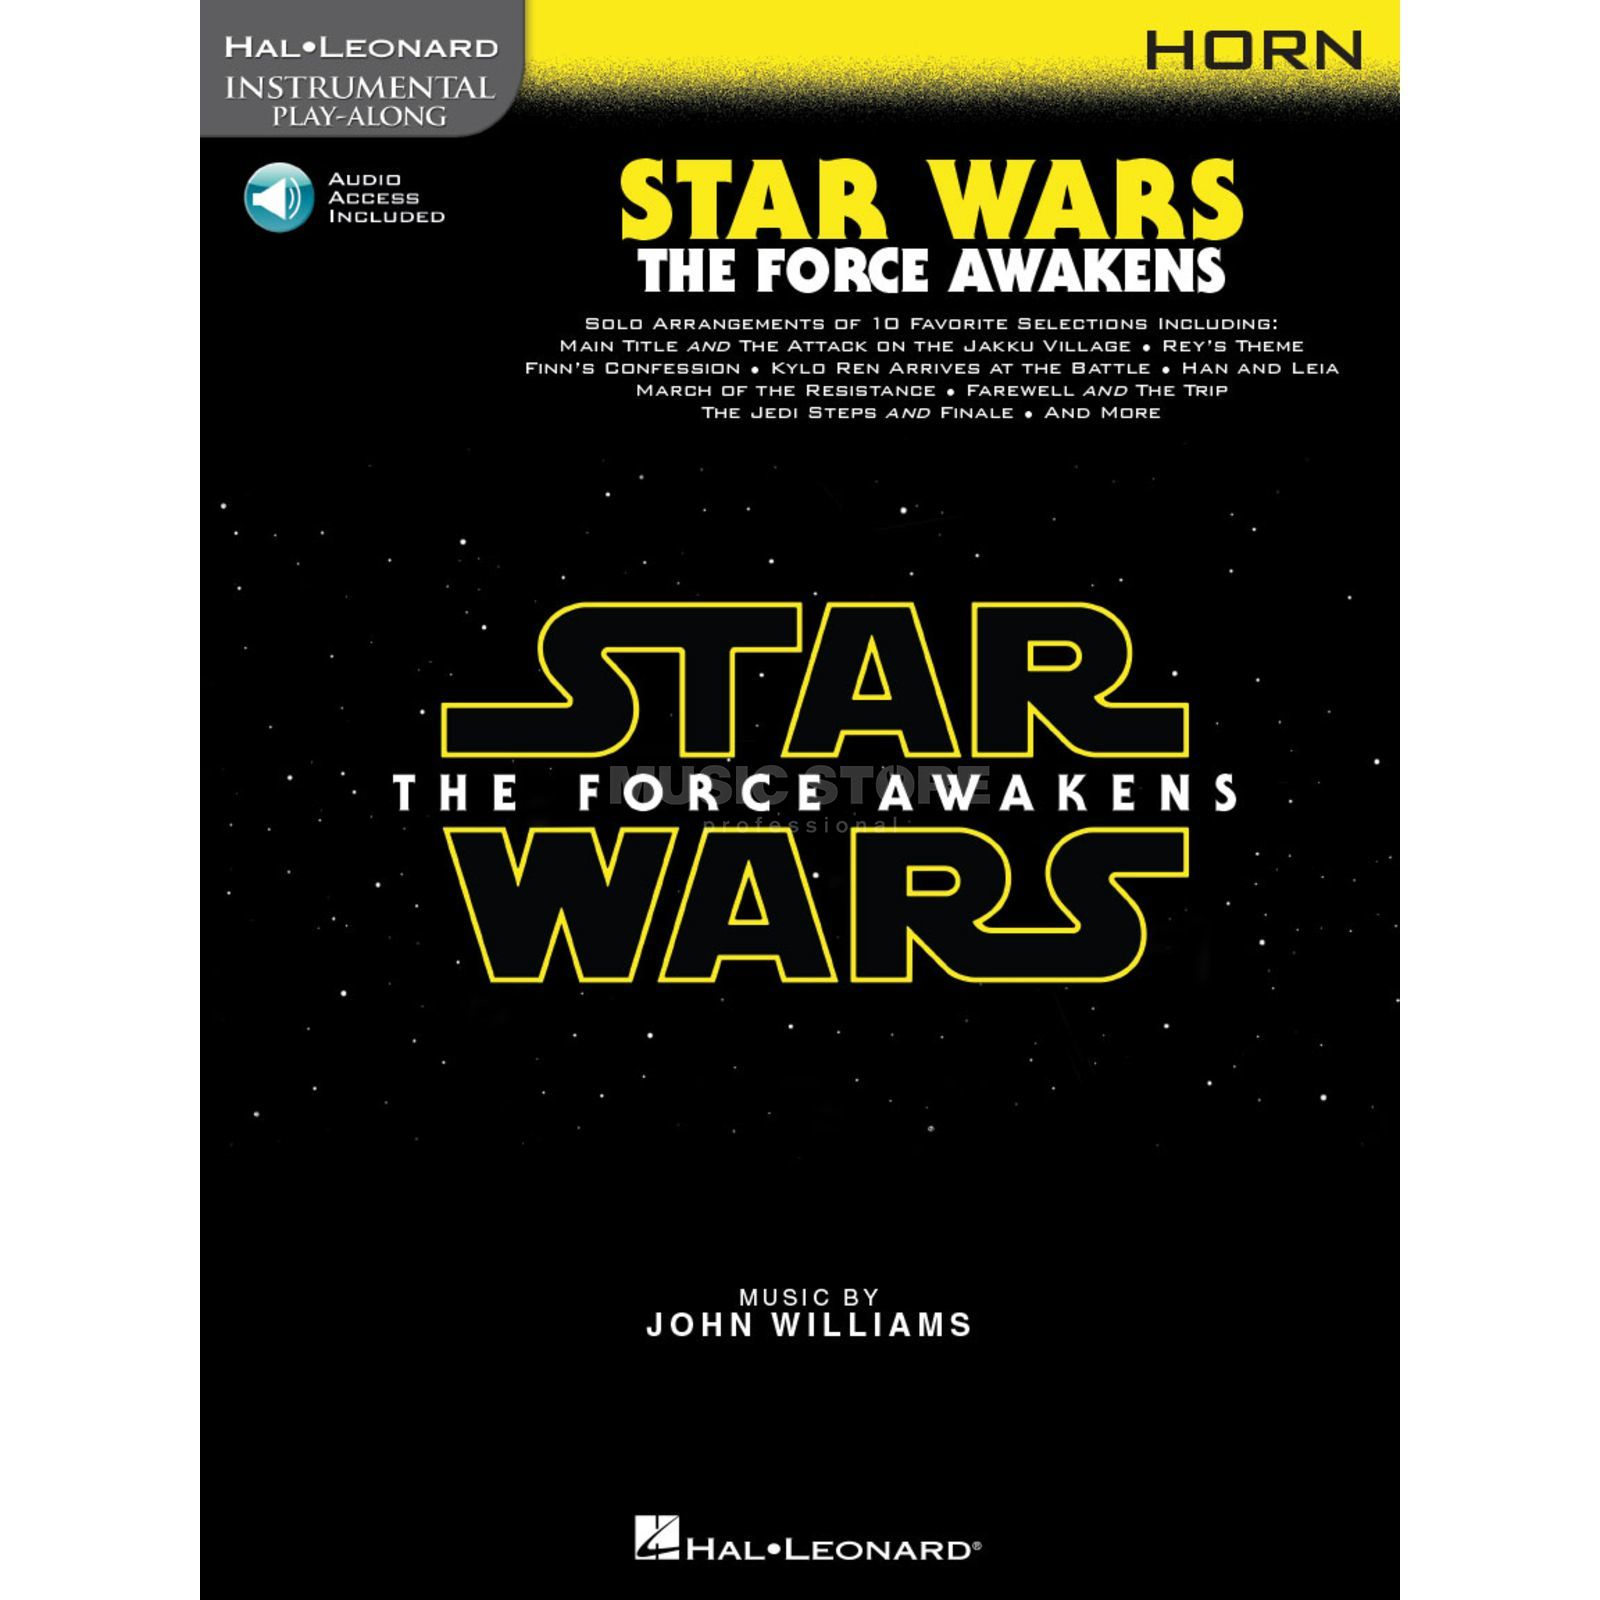 Hal Leonard Instrumental Play-Along: Star Wars - The Force Awakens - Horn Produktbillede